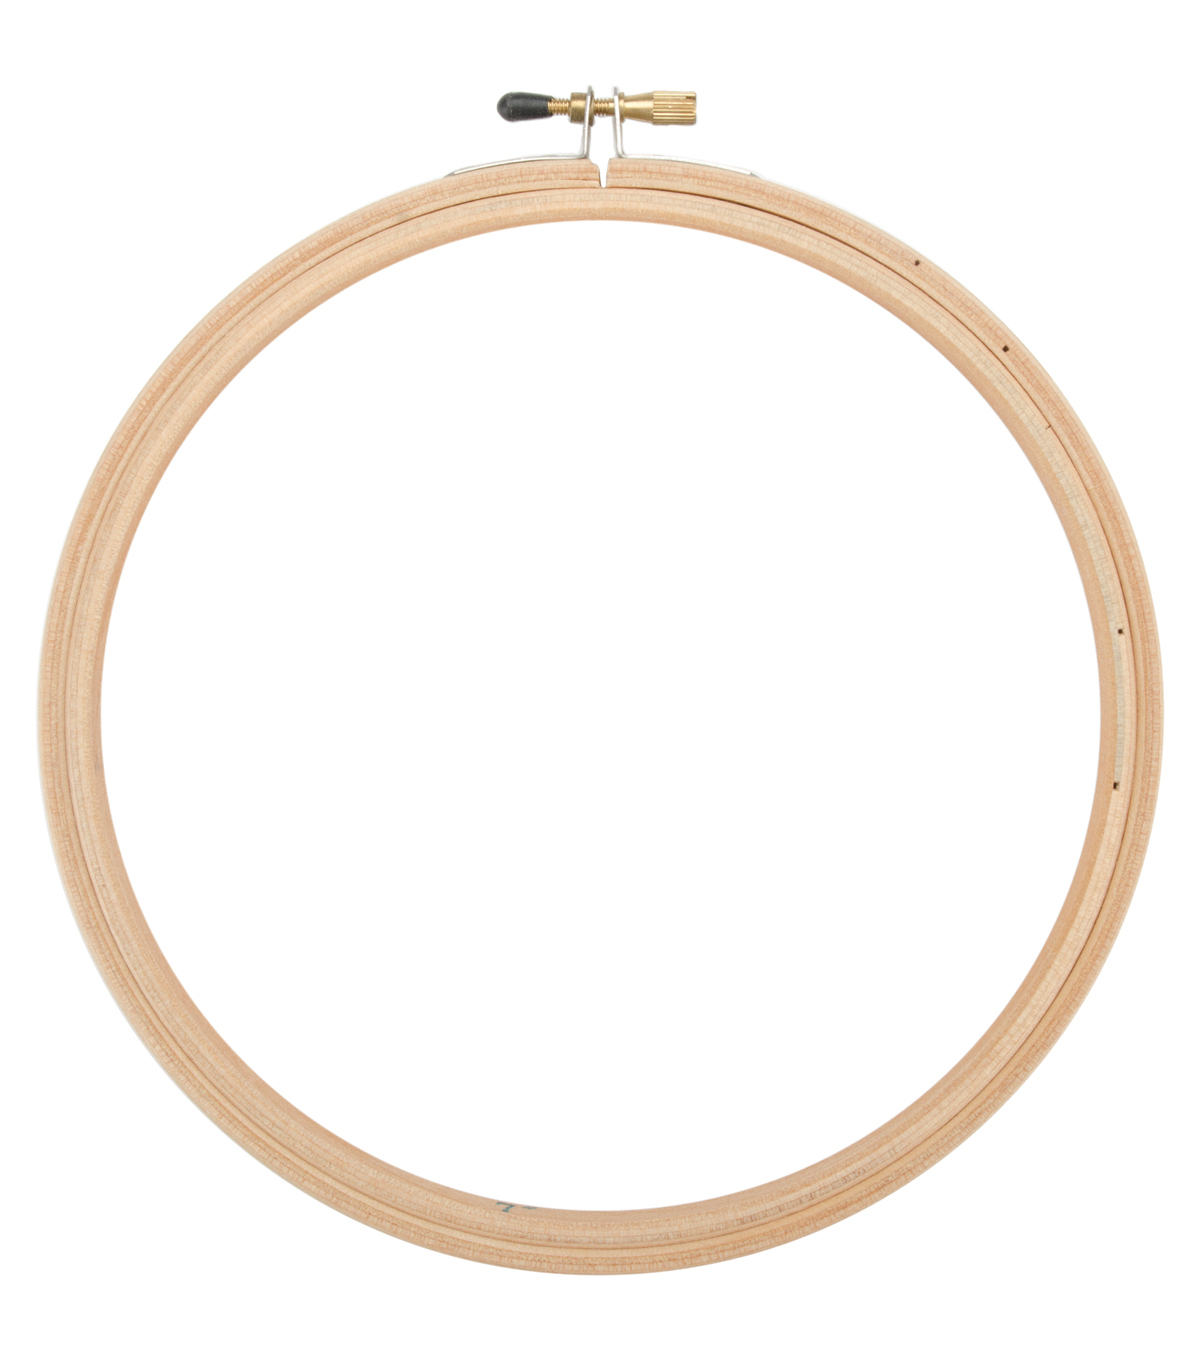 8\u0022 Wood Embroidery Hoop With Round Edges-